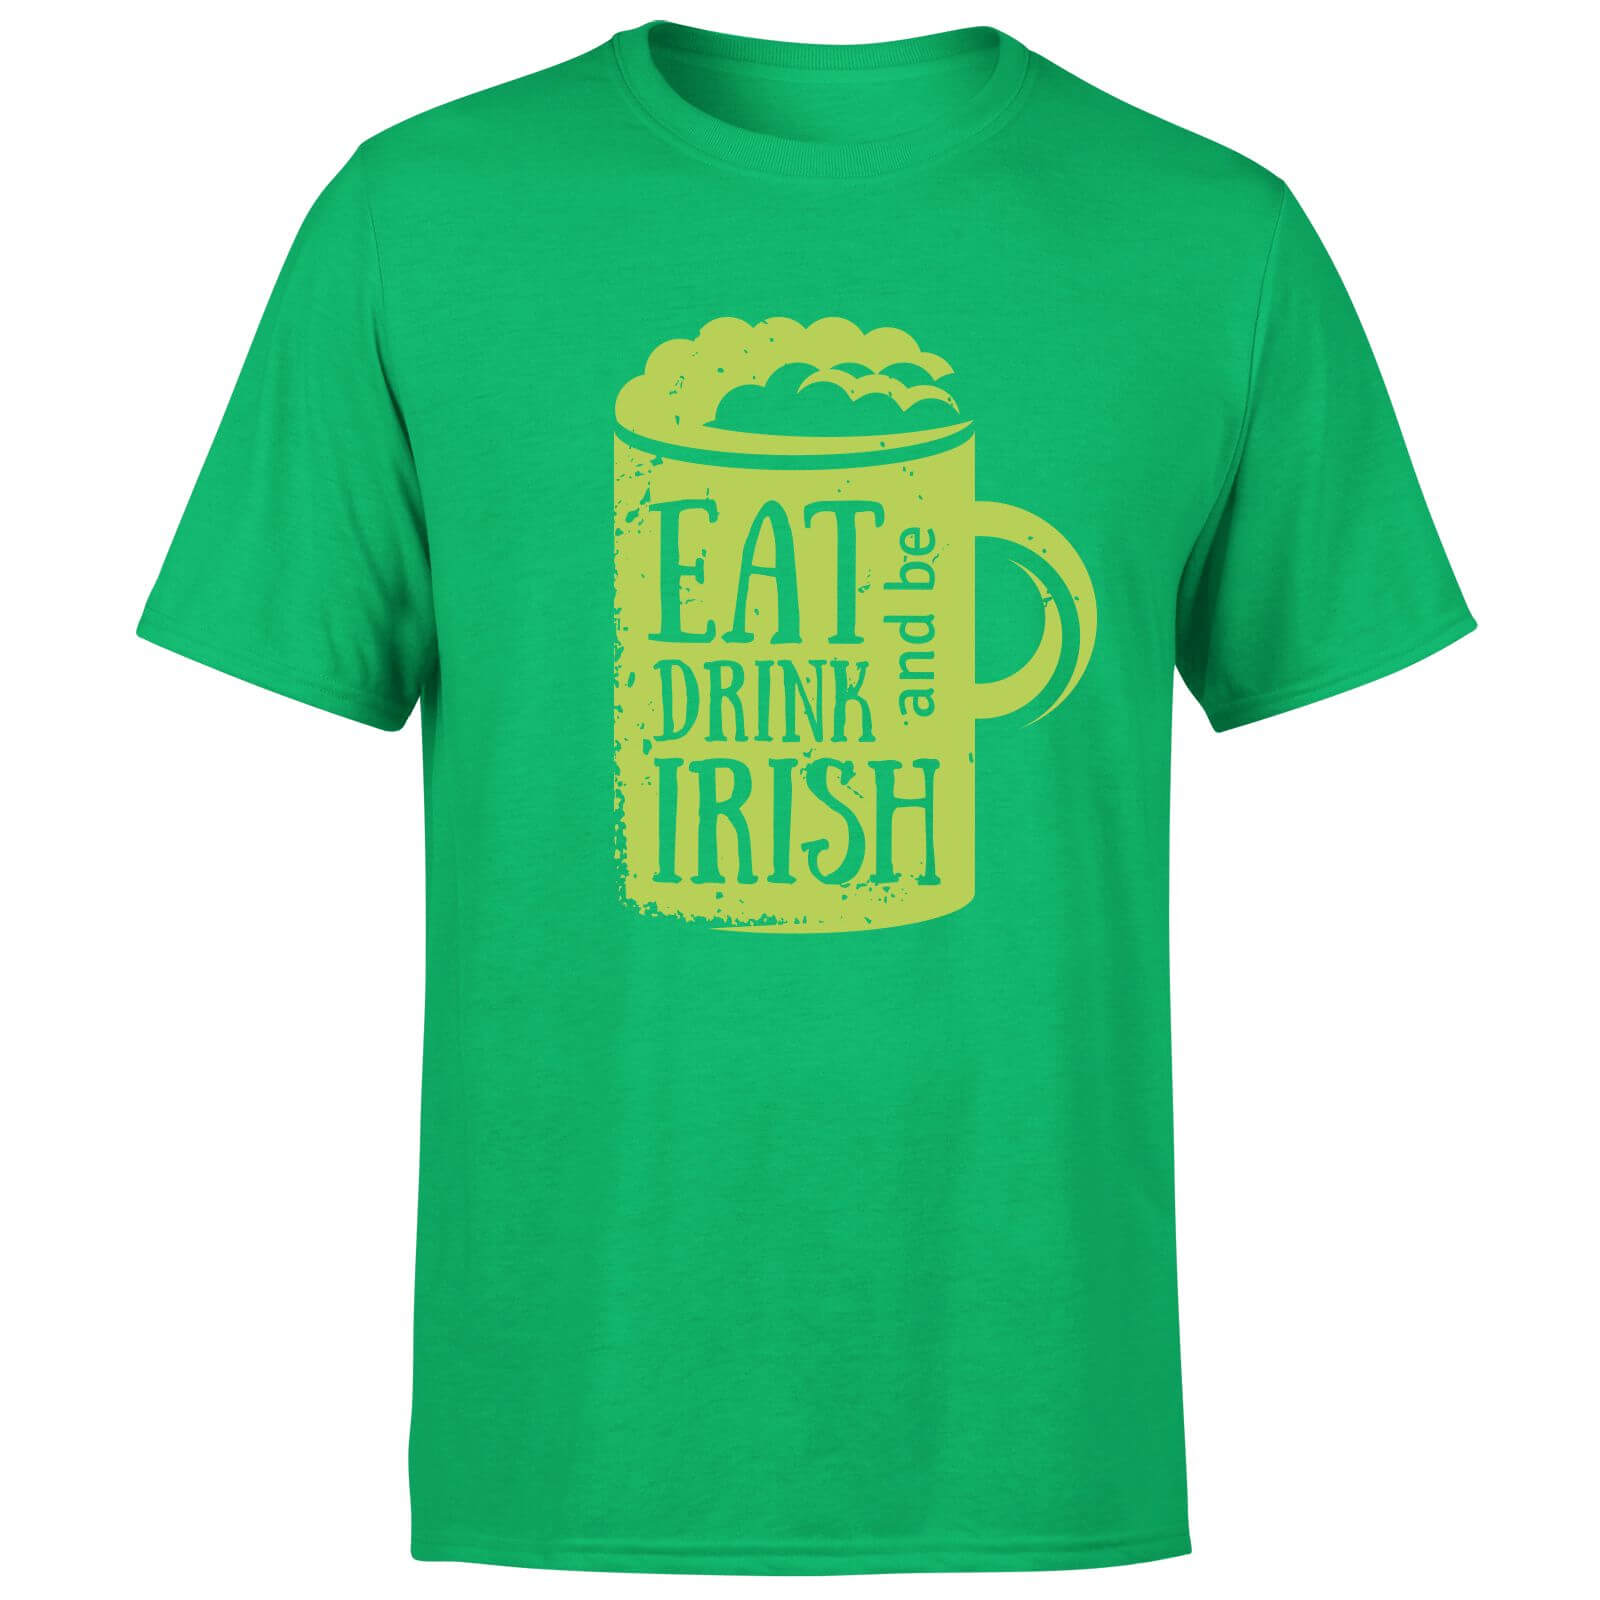 Eat, Drink And Be Irish T-Shirt - Kelly Green